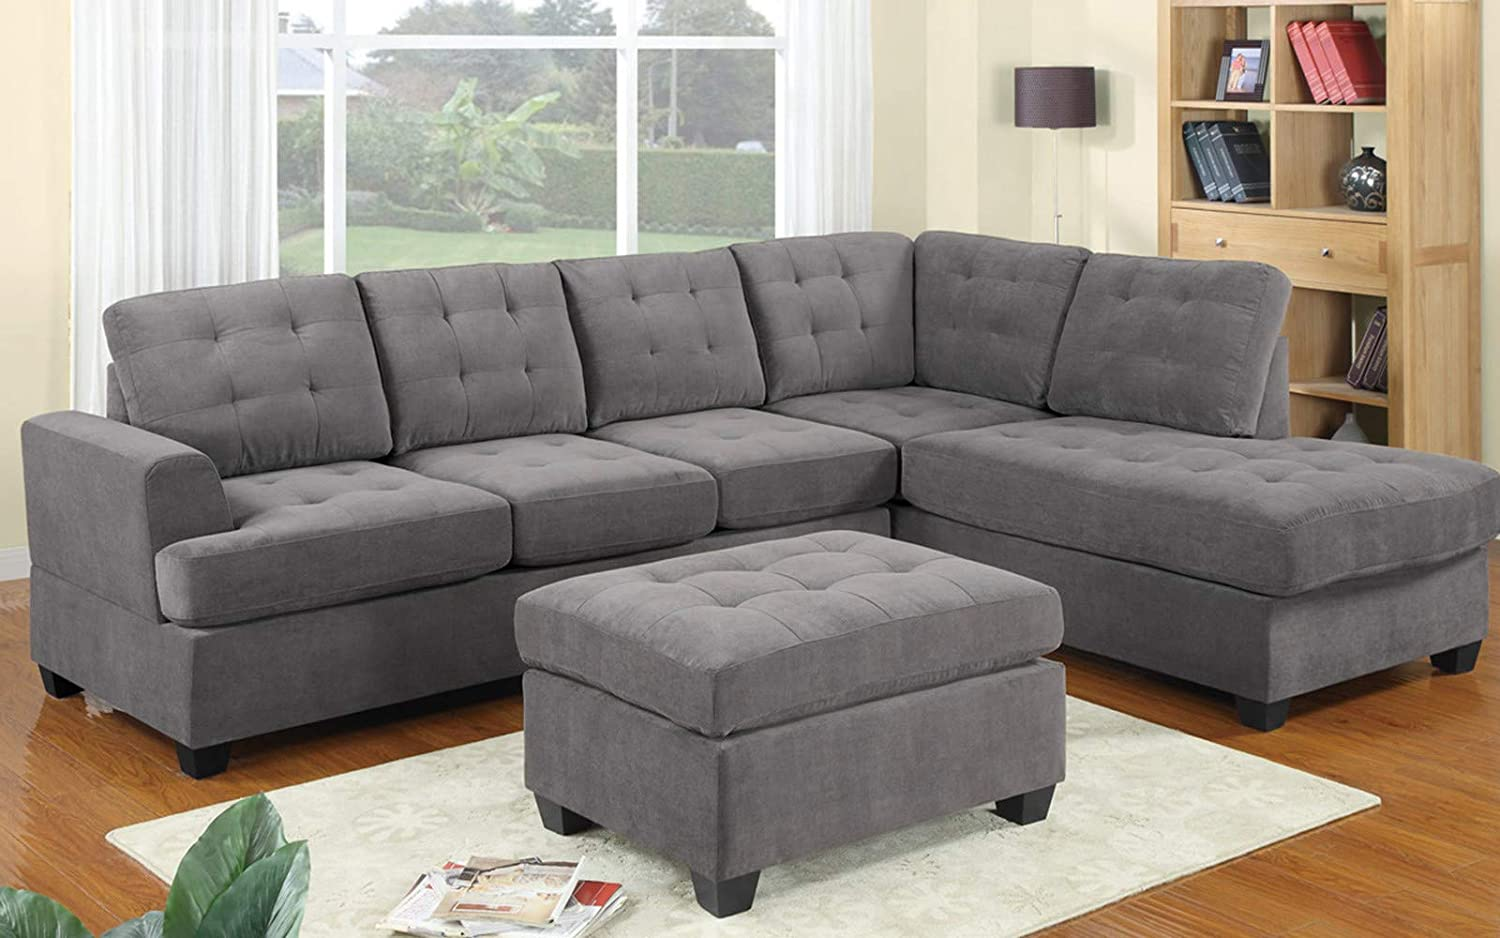 Amazon.com: Sectional Sofa Set, LOKESI 3 Piece Corner Sofa ...